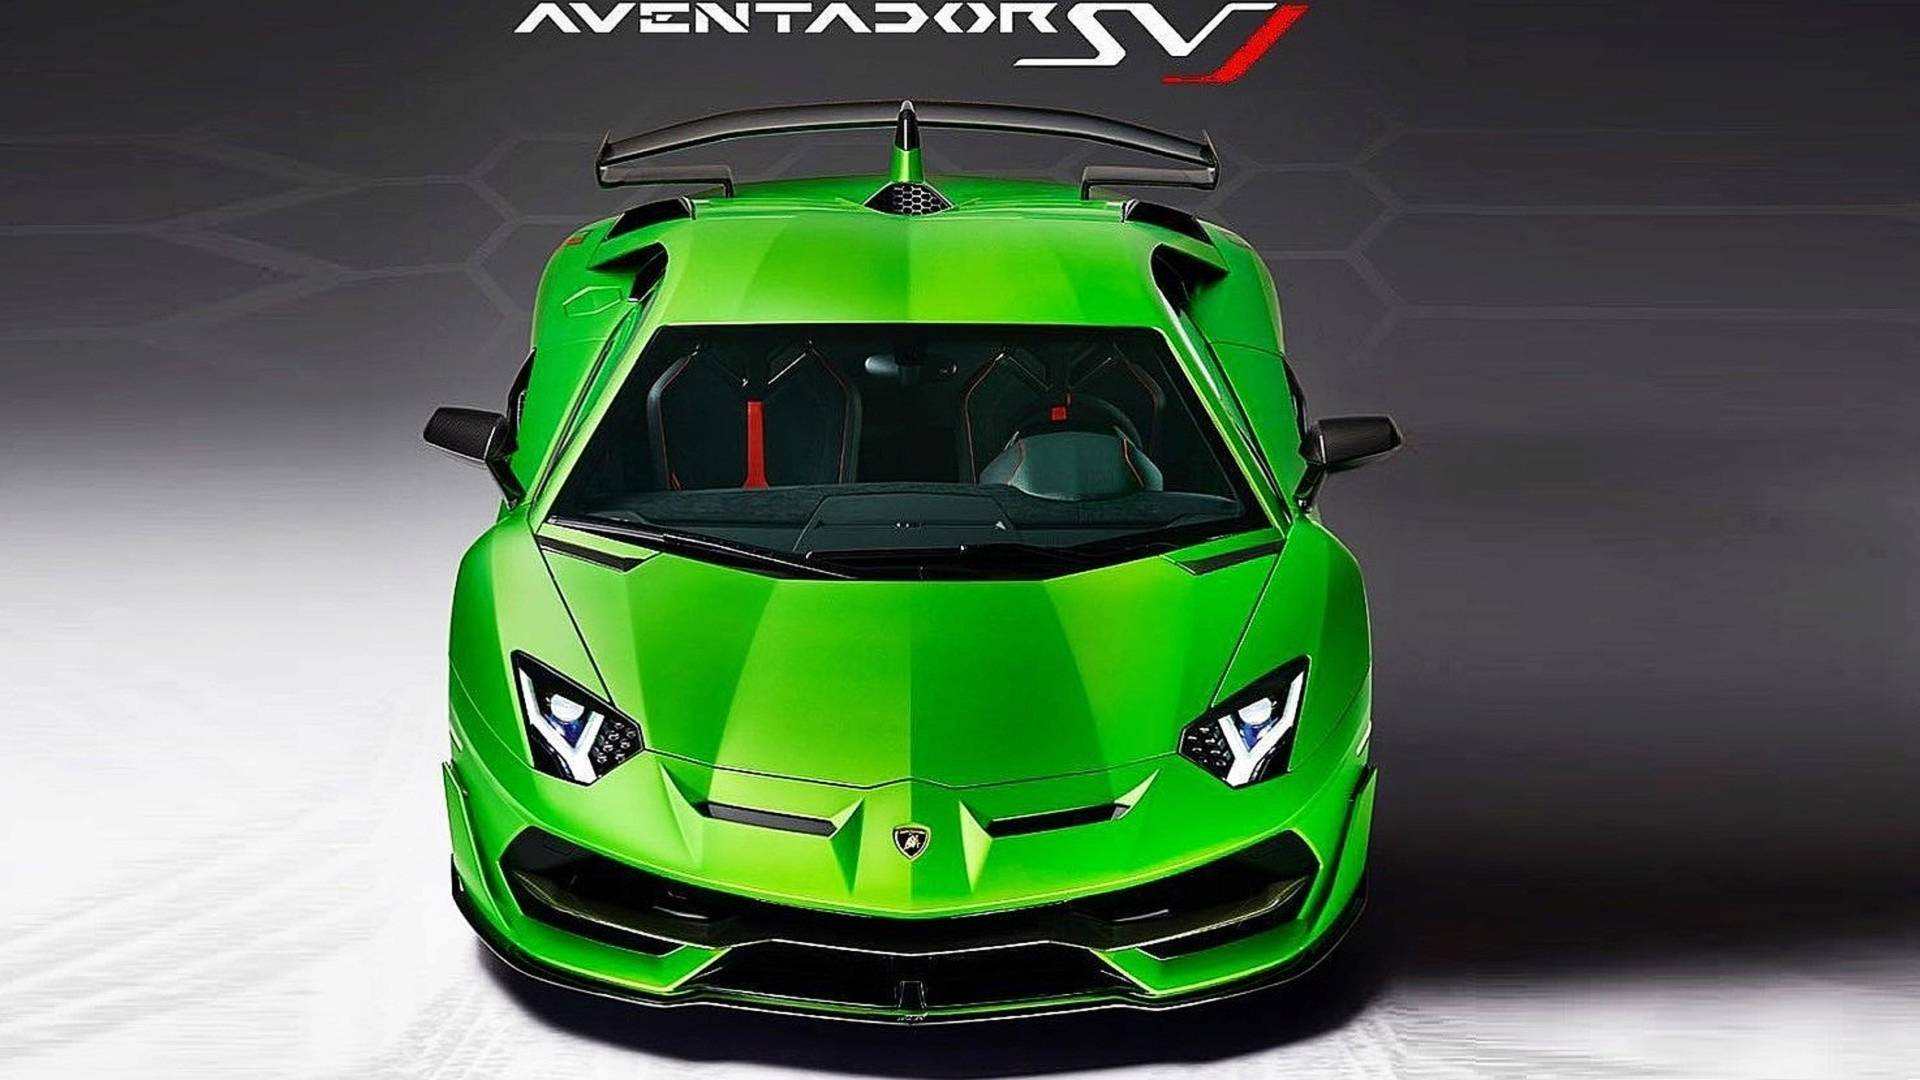 electric turbo with 1118158 Lamborghini Aventador Svj First Look on 1111118 2018 Kia Stonic Revealed in addition Panamera Sport Turismo together with New Audi Rs7 2018 Spy Photos Specs Prices as well Showthread together with 1118158 lamborghini Aventador Svj First Look.